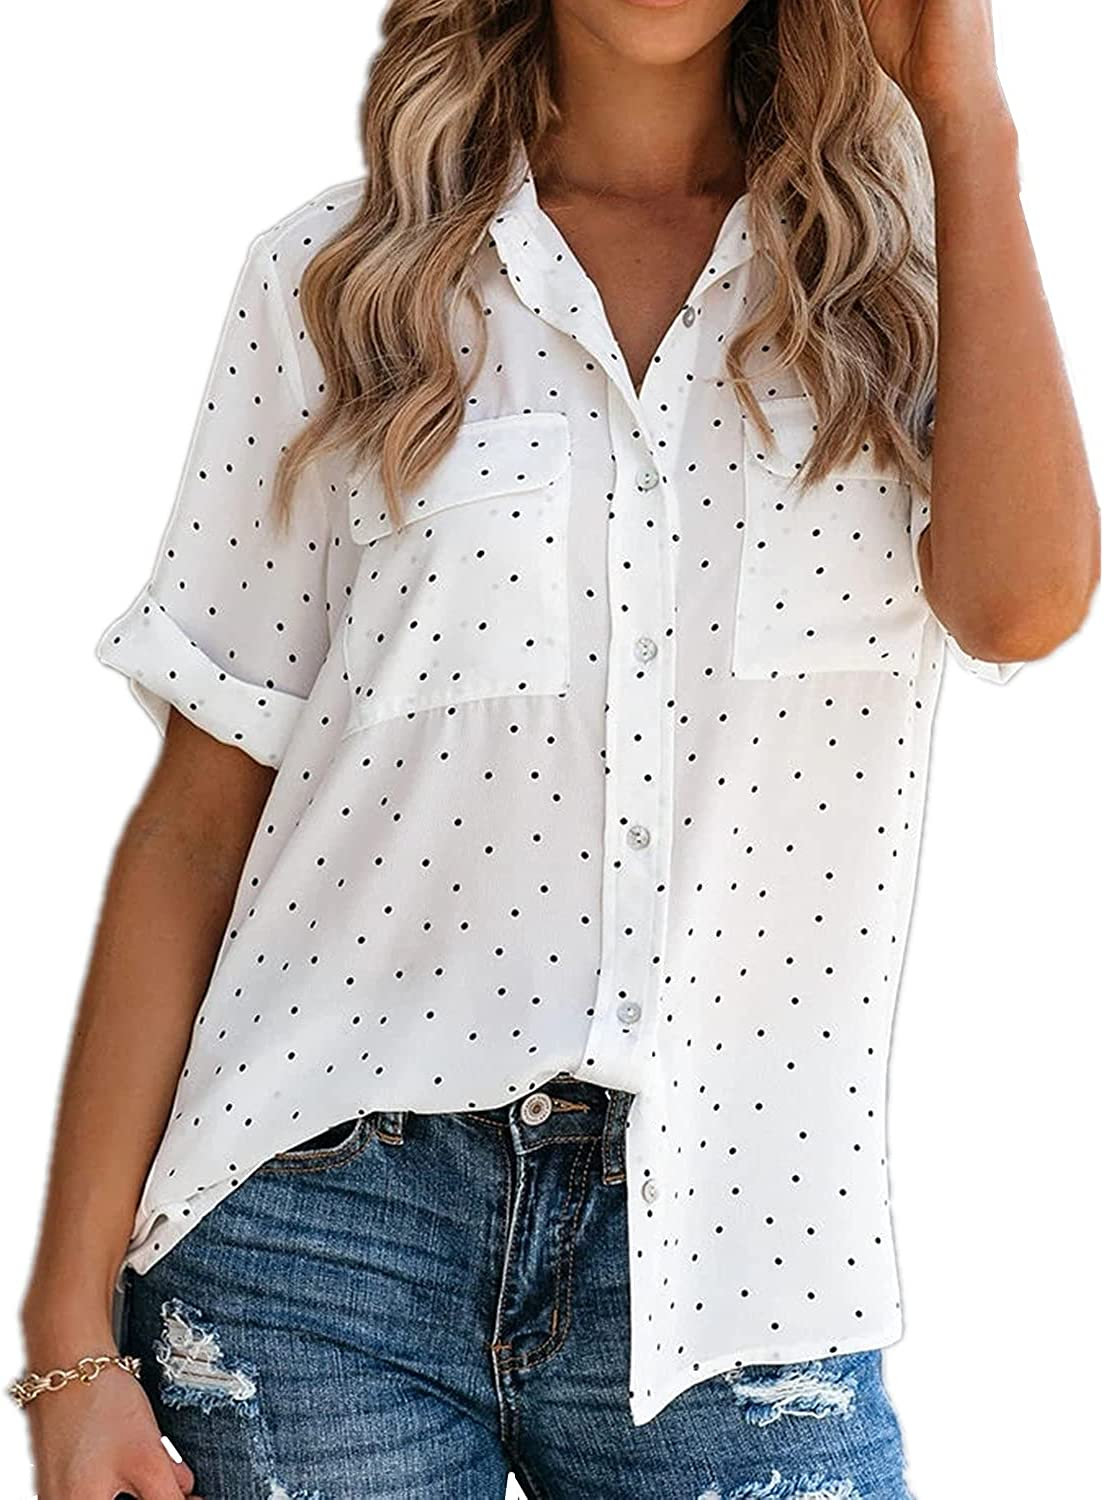 Adnee Women's Short Sleeve V-Neck Polka Dot Casual Blouses Button Down Shirts with Pockets